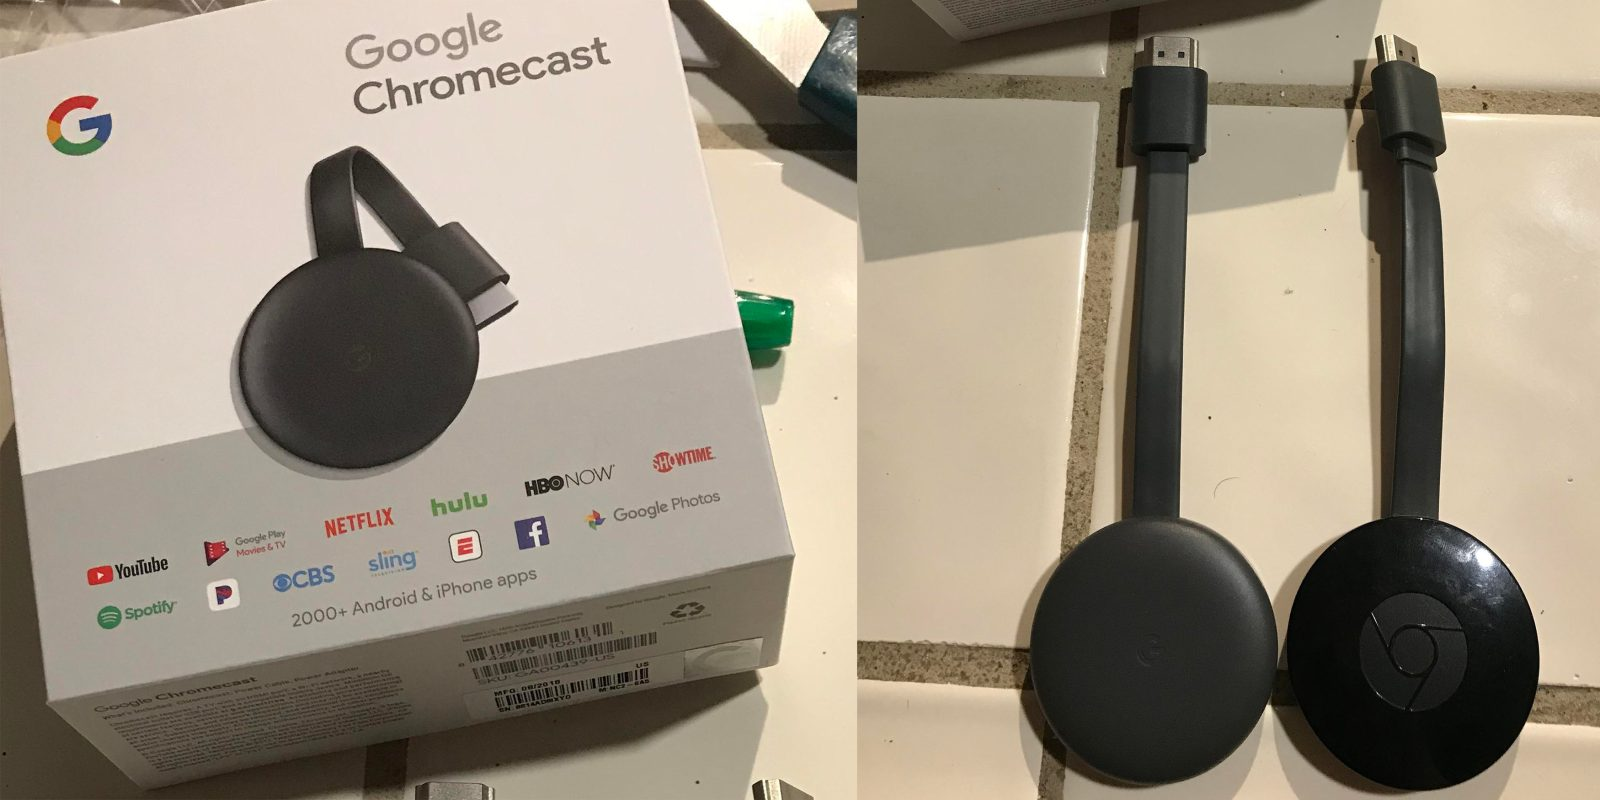 3rd-generation Chromecast leaks ahead of Google's launch - 9to5Google